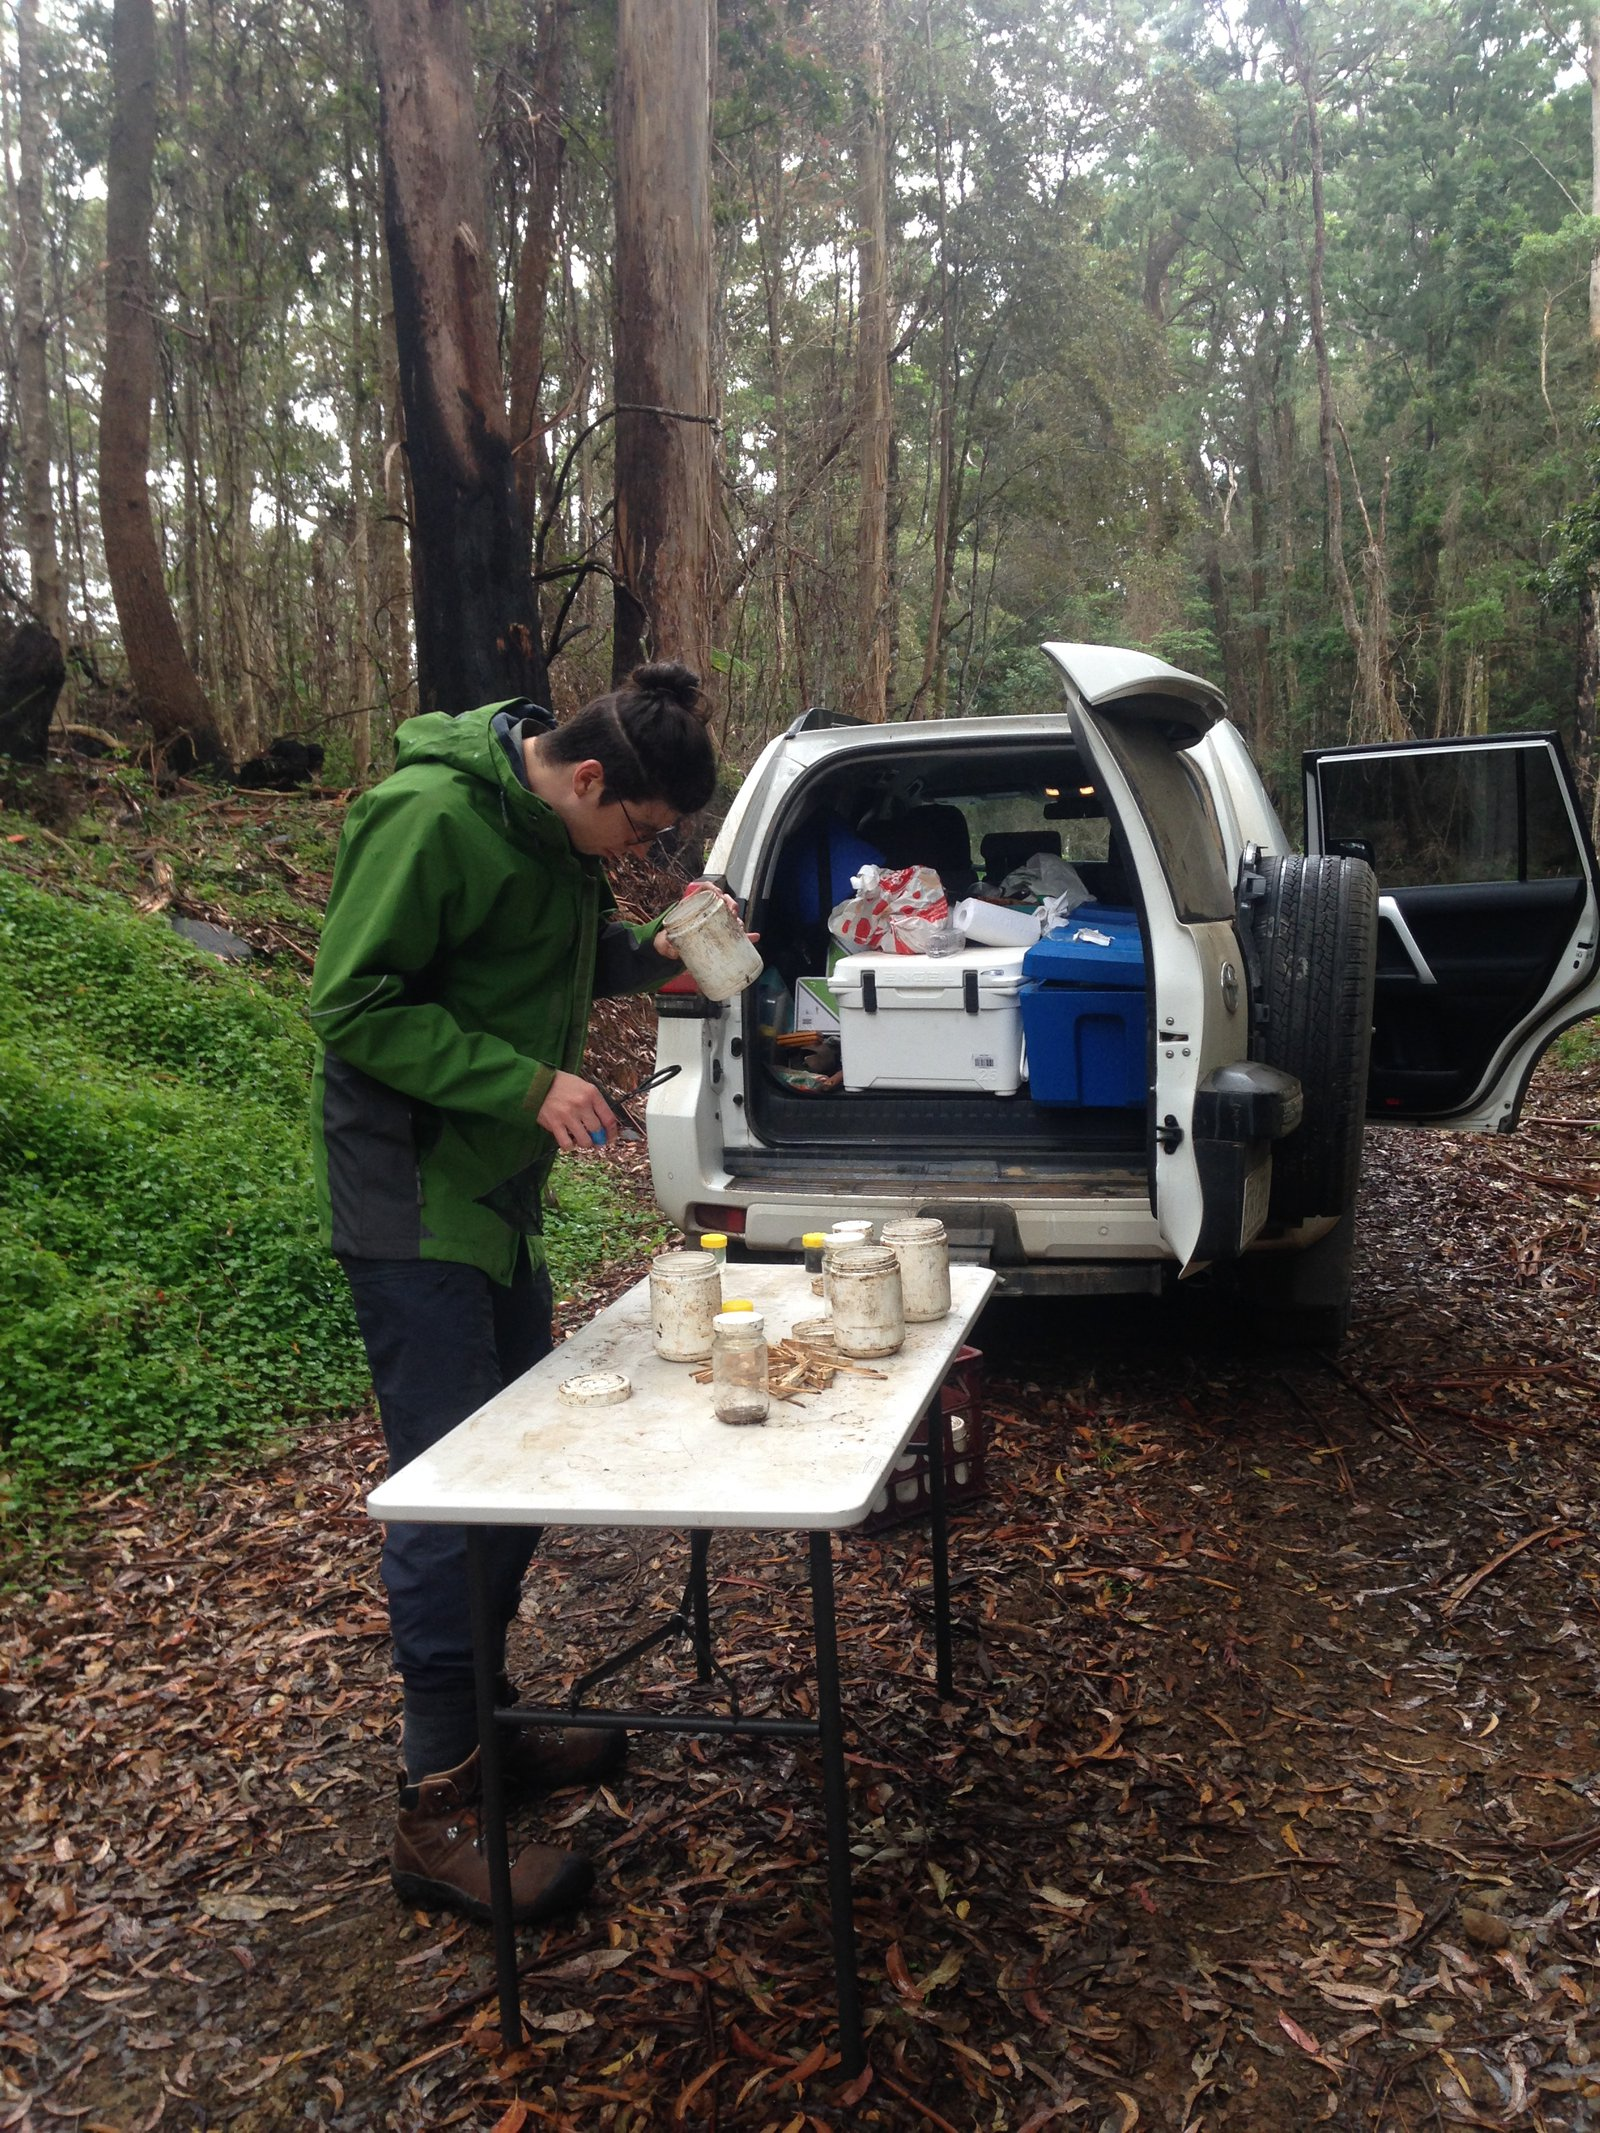 Beetles (Coleoptera) as a target for assessing the impact of 2019/20 wildfires on insects in the NE forests of NSW.